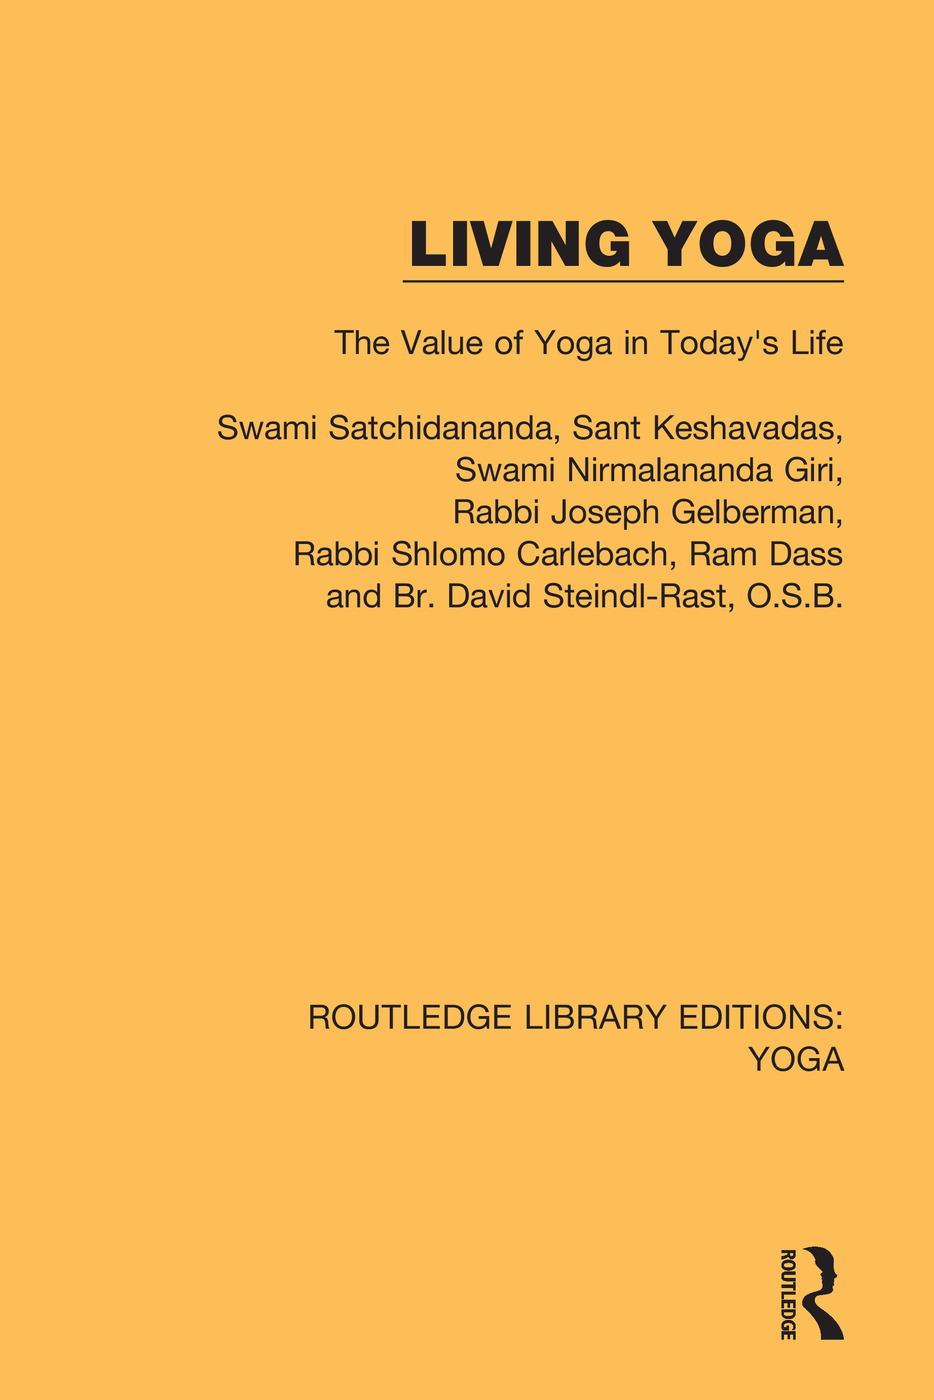 Living Yoga: The Value of Yoga in Today's Life book cover